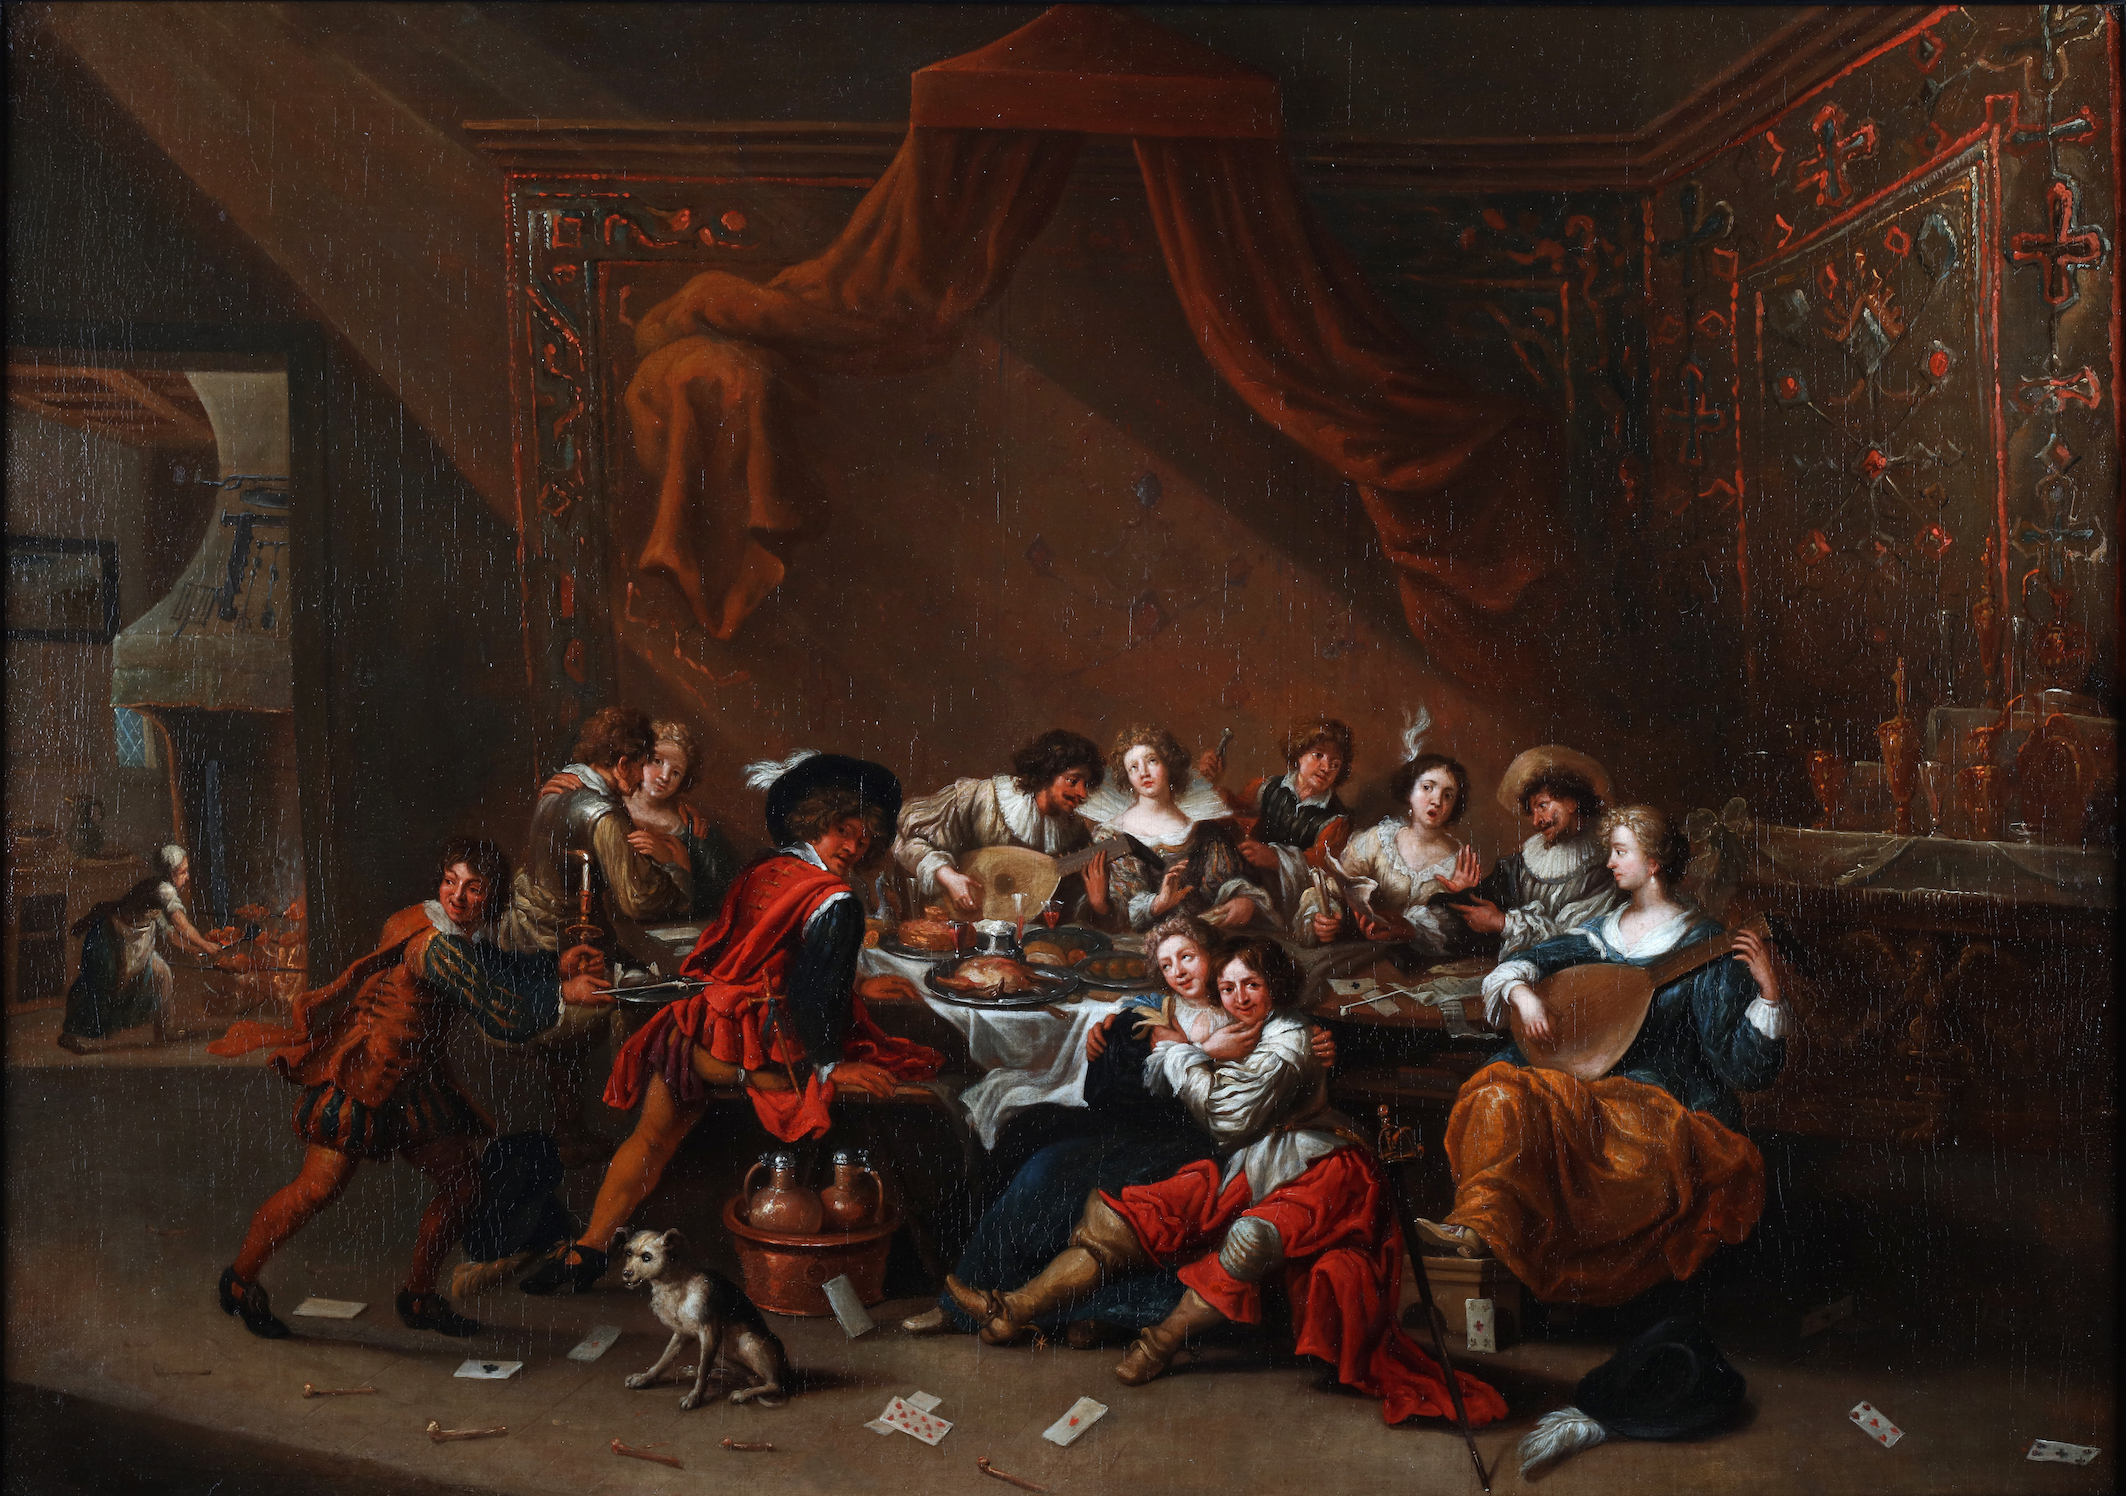 People eating, drinking, smoking, making music and romancing in a rich interior